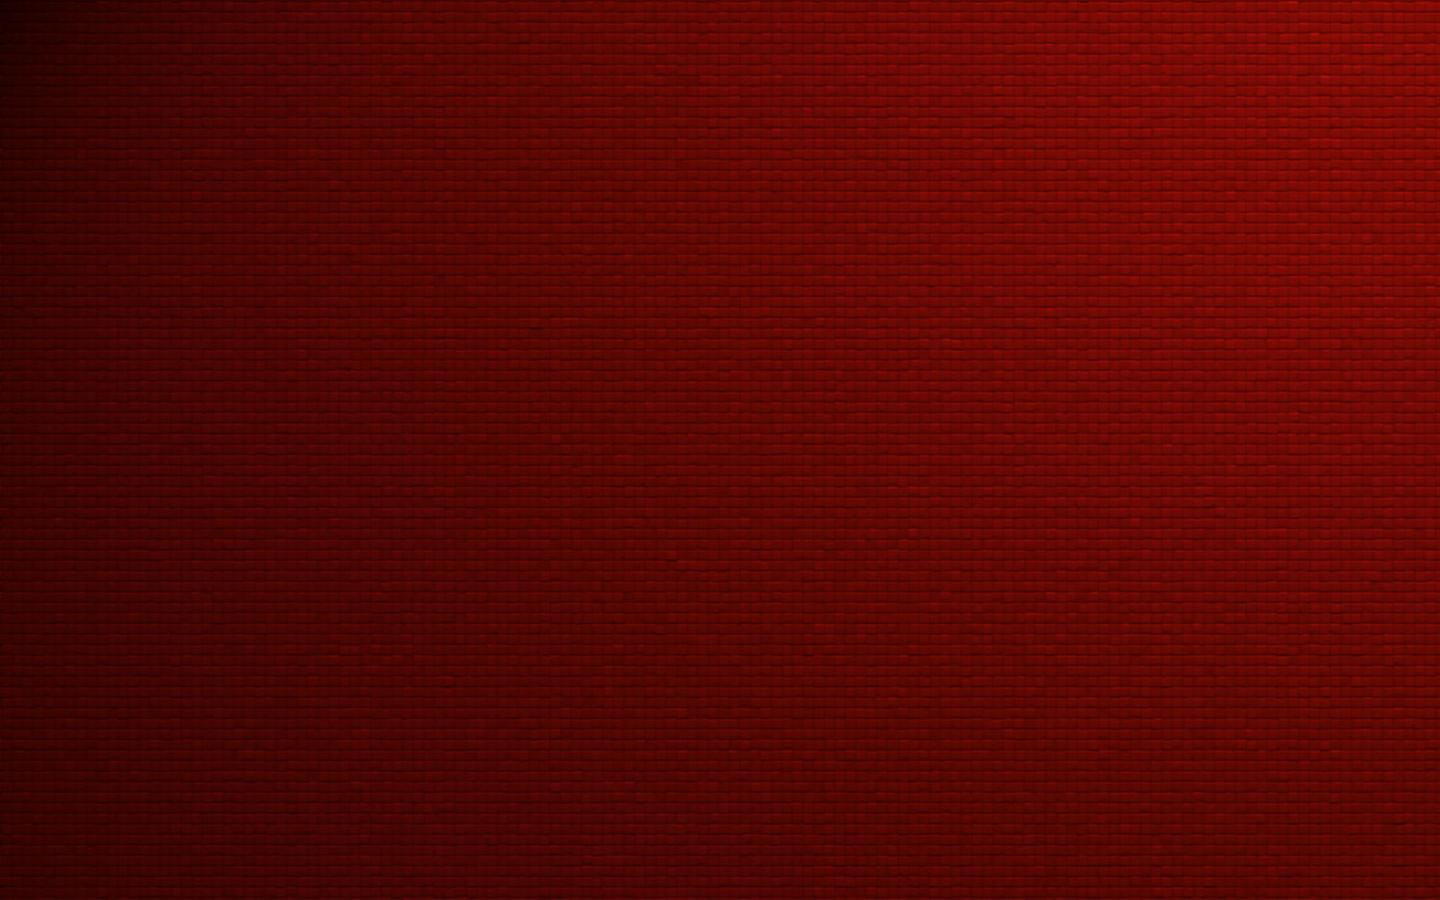 red wallpaper Amazing Cover High Quality 208 Backgrounds